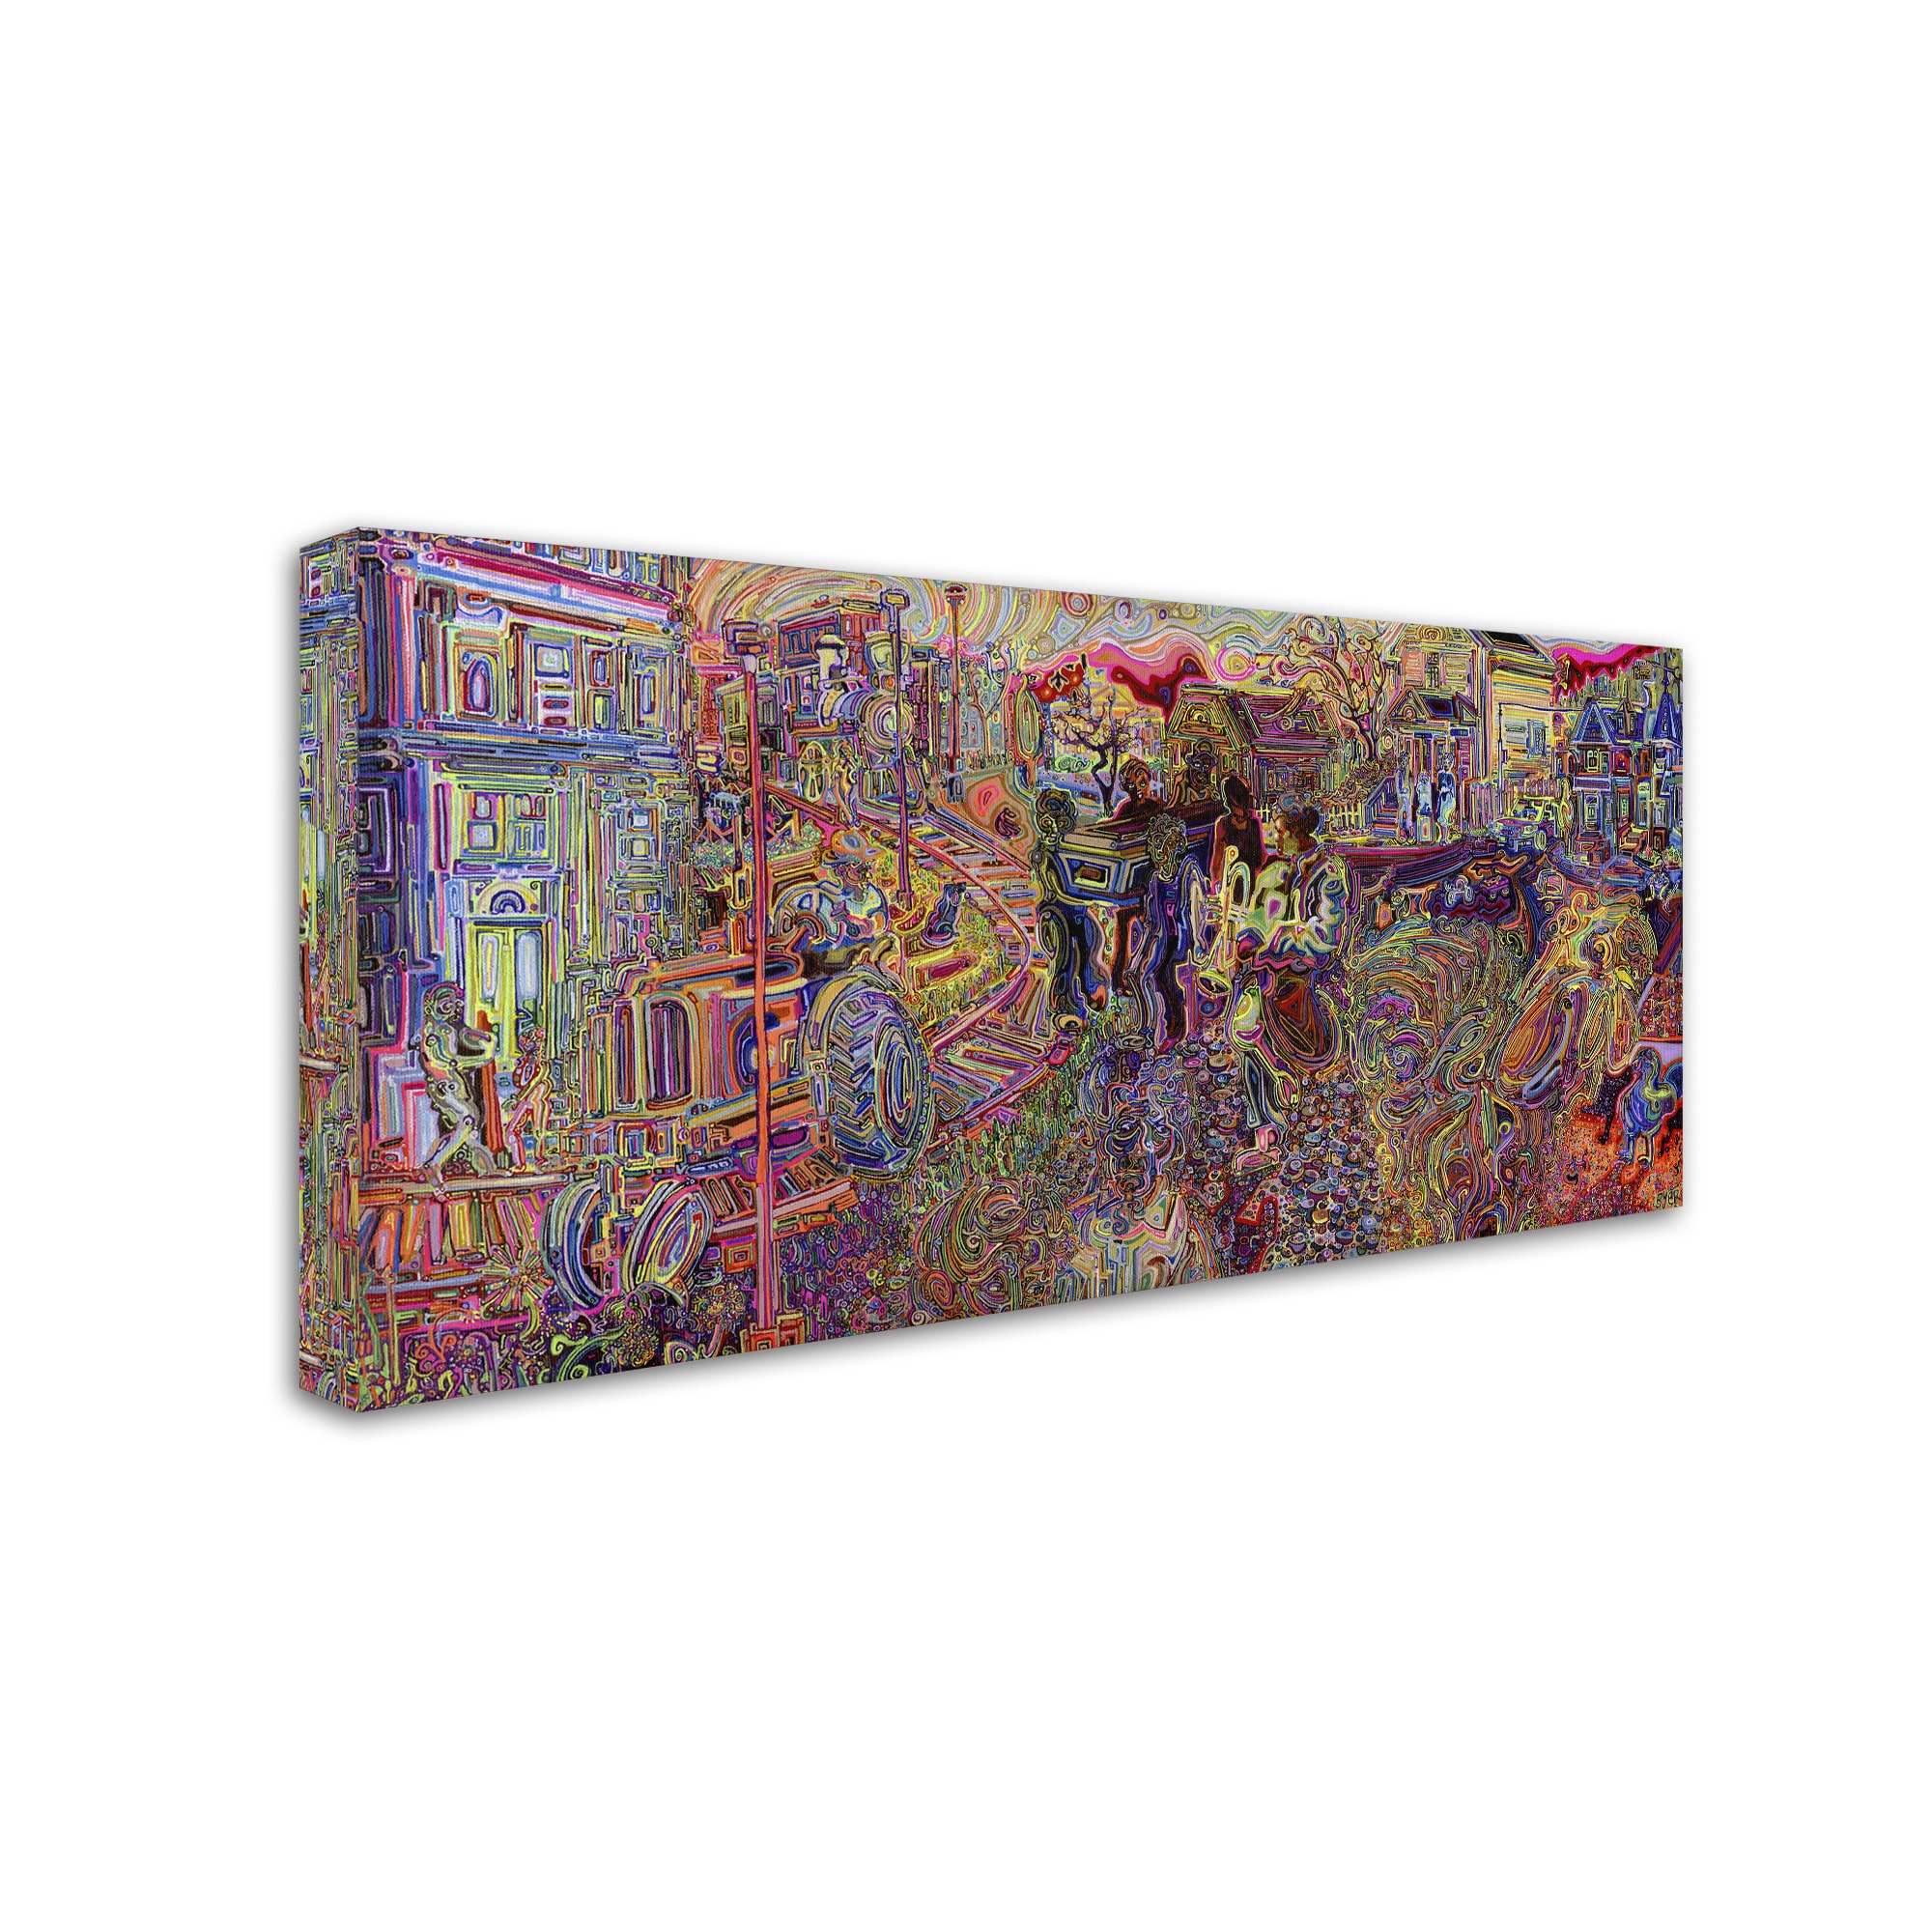 Home Goods Online Canada Buy Gallery Wrapped Canvas Online At Overstock Our